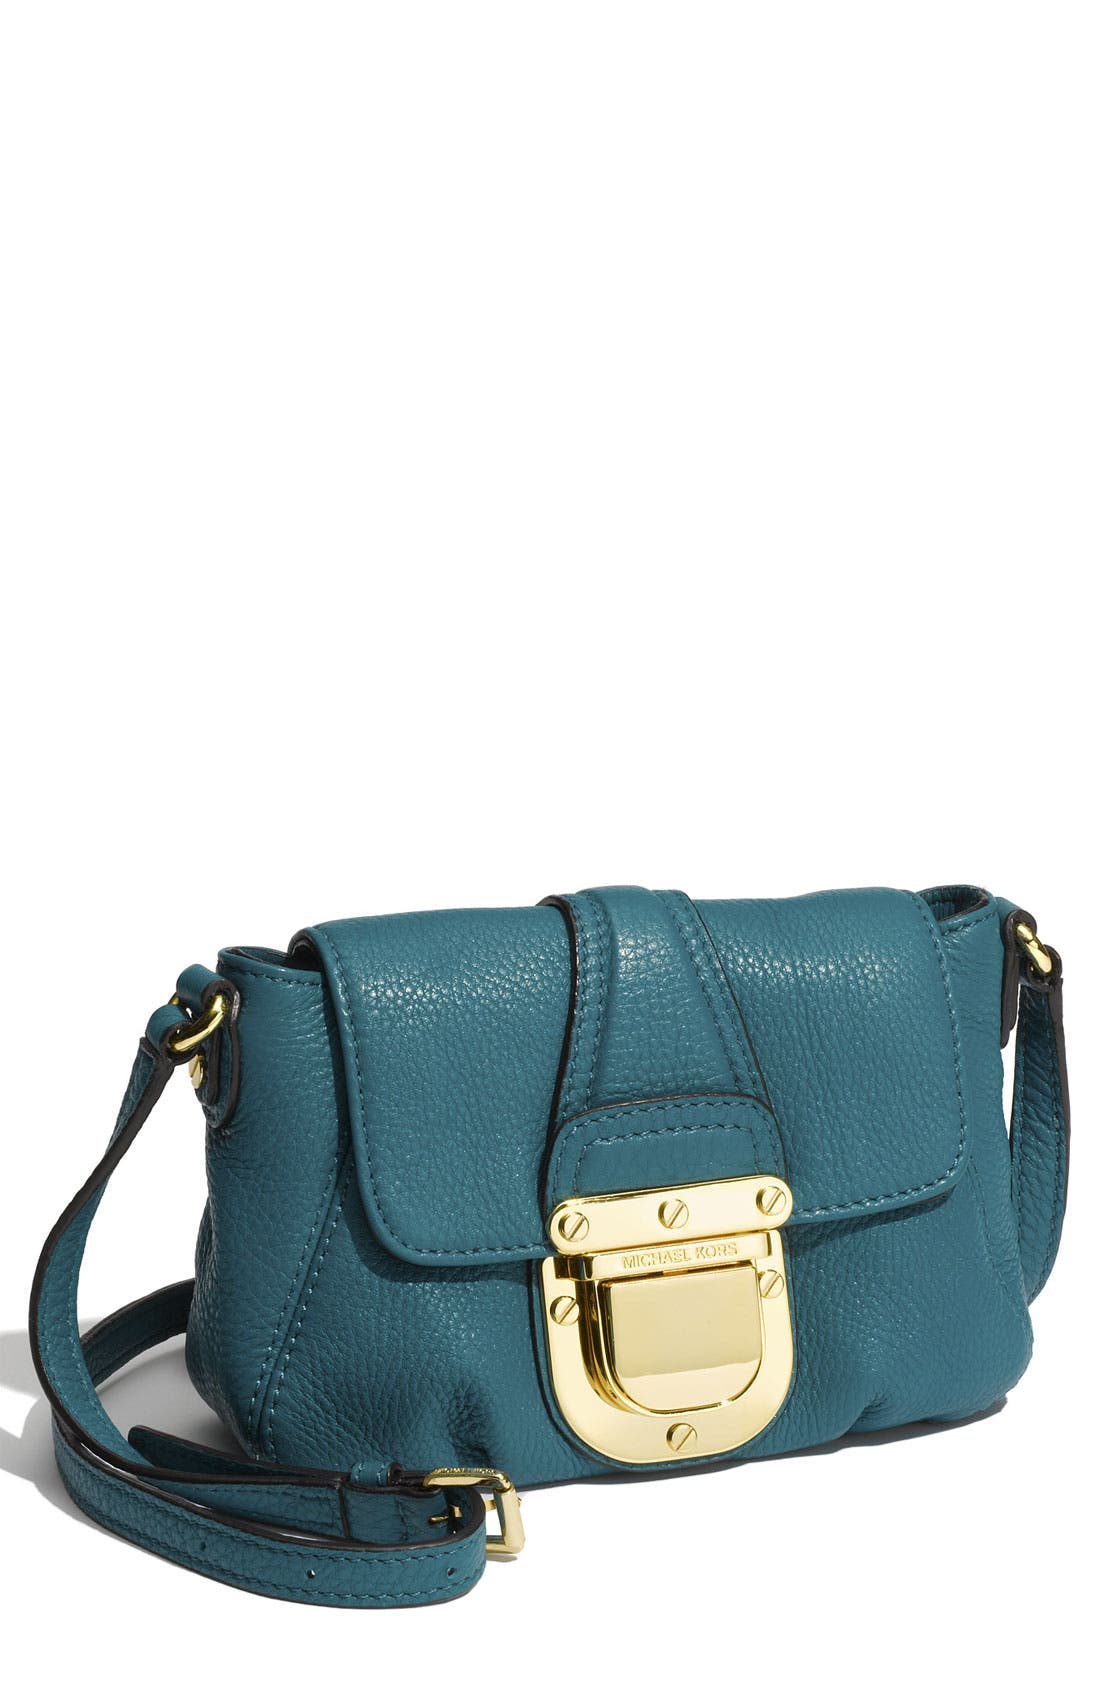 Main Image - MICHAEL Michael Kors 'Charlton' Crossbody Bag, Small